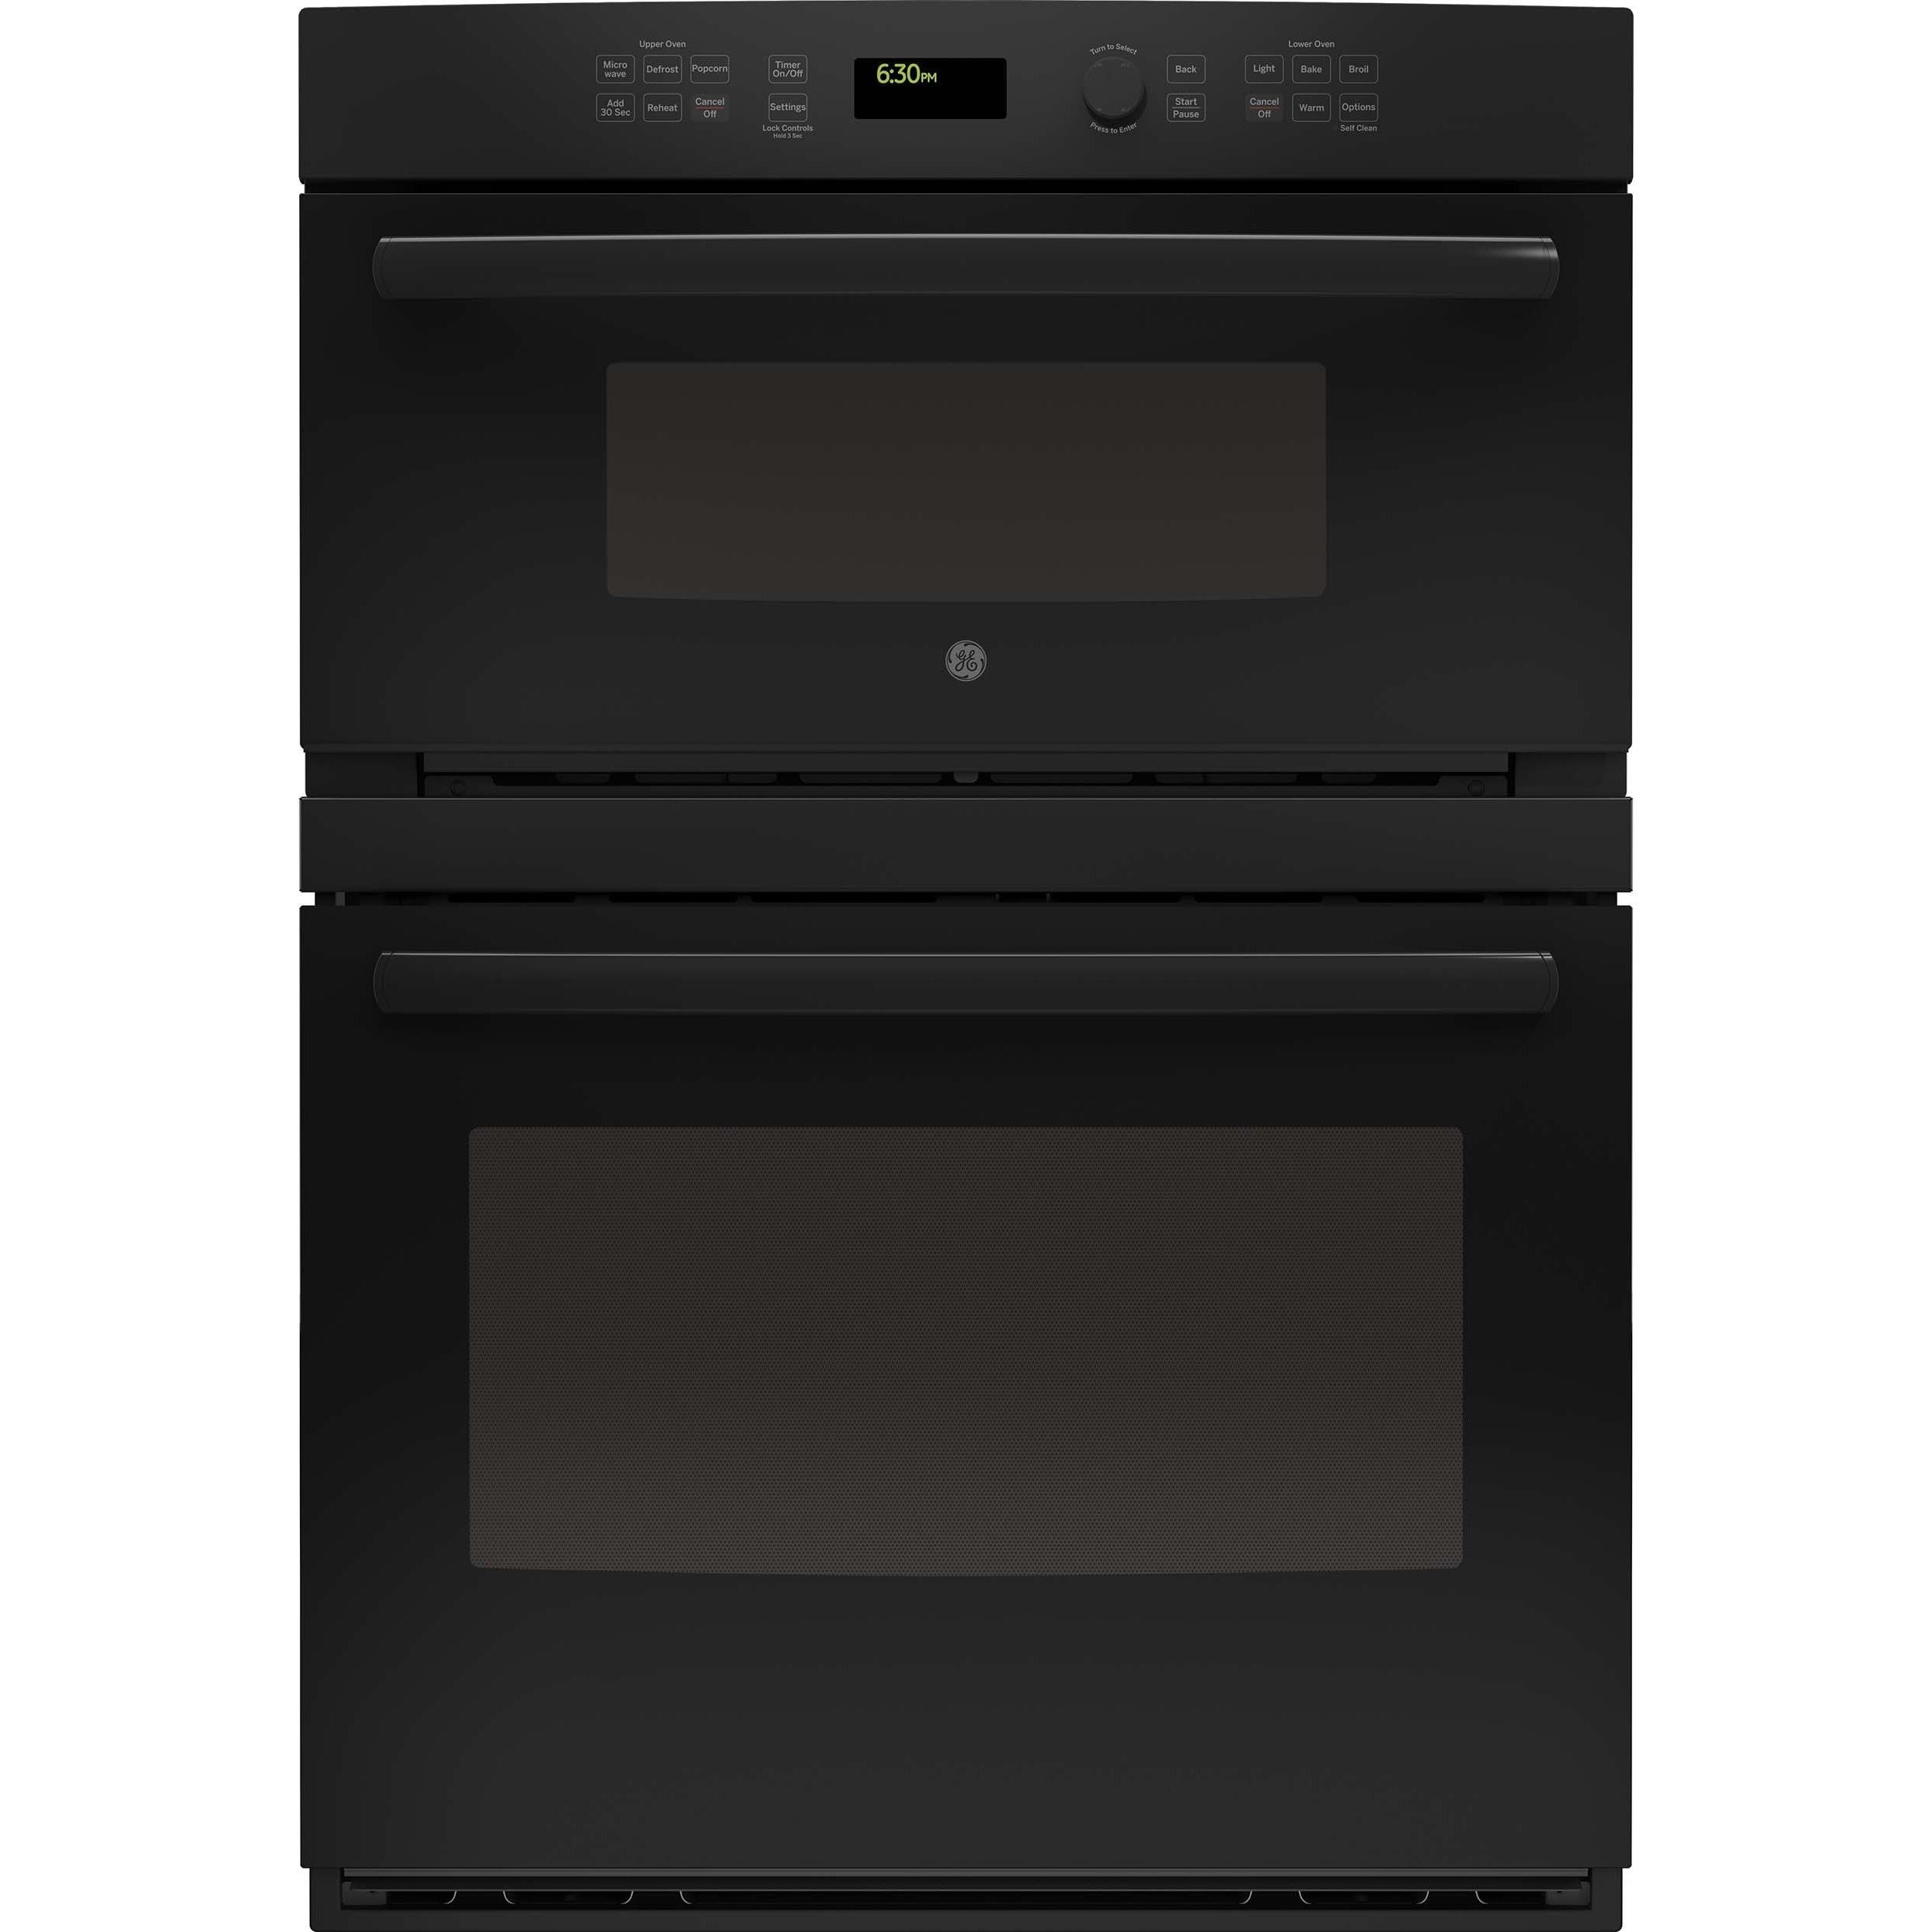 Wall Oven Microwave Combo 24 Inch: 24 Inch Microwave Wall Oven Combination